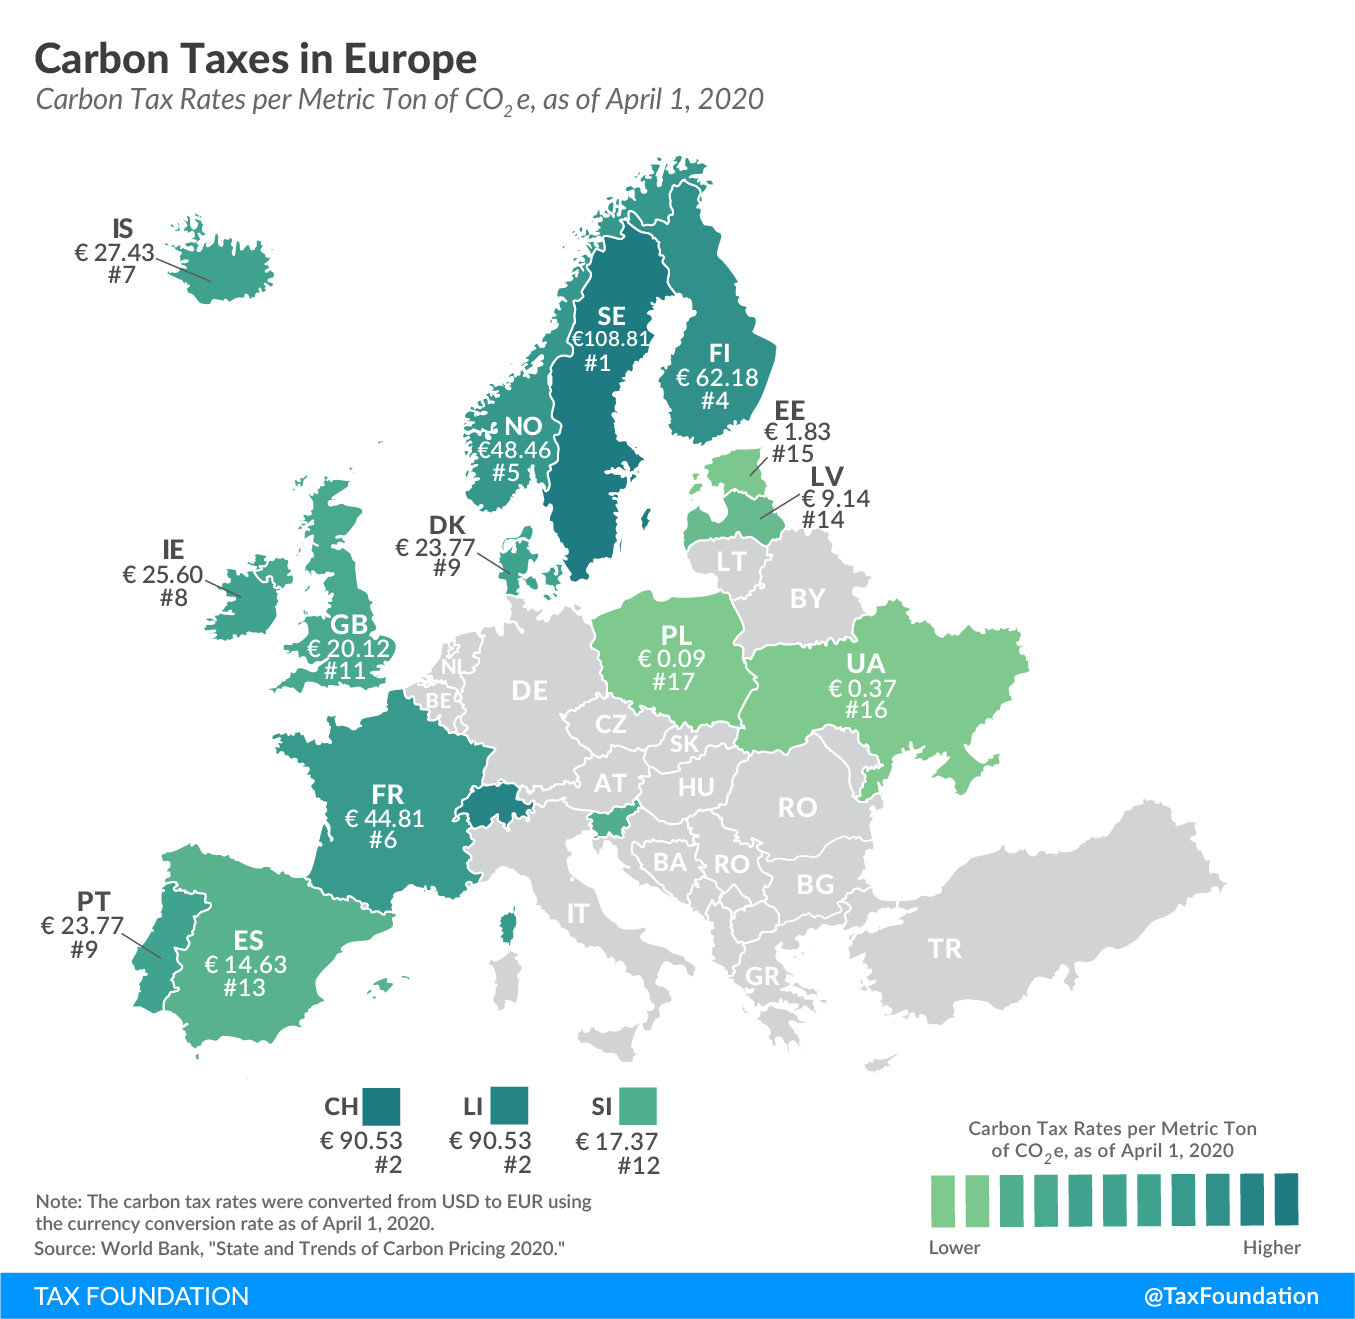 european countries with a carbon tax, carbon tax rates in Europe, carbon taxes in Europe